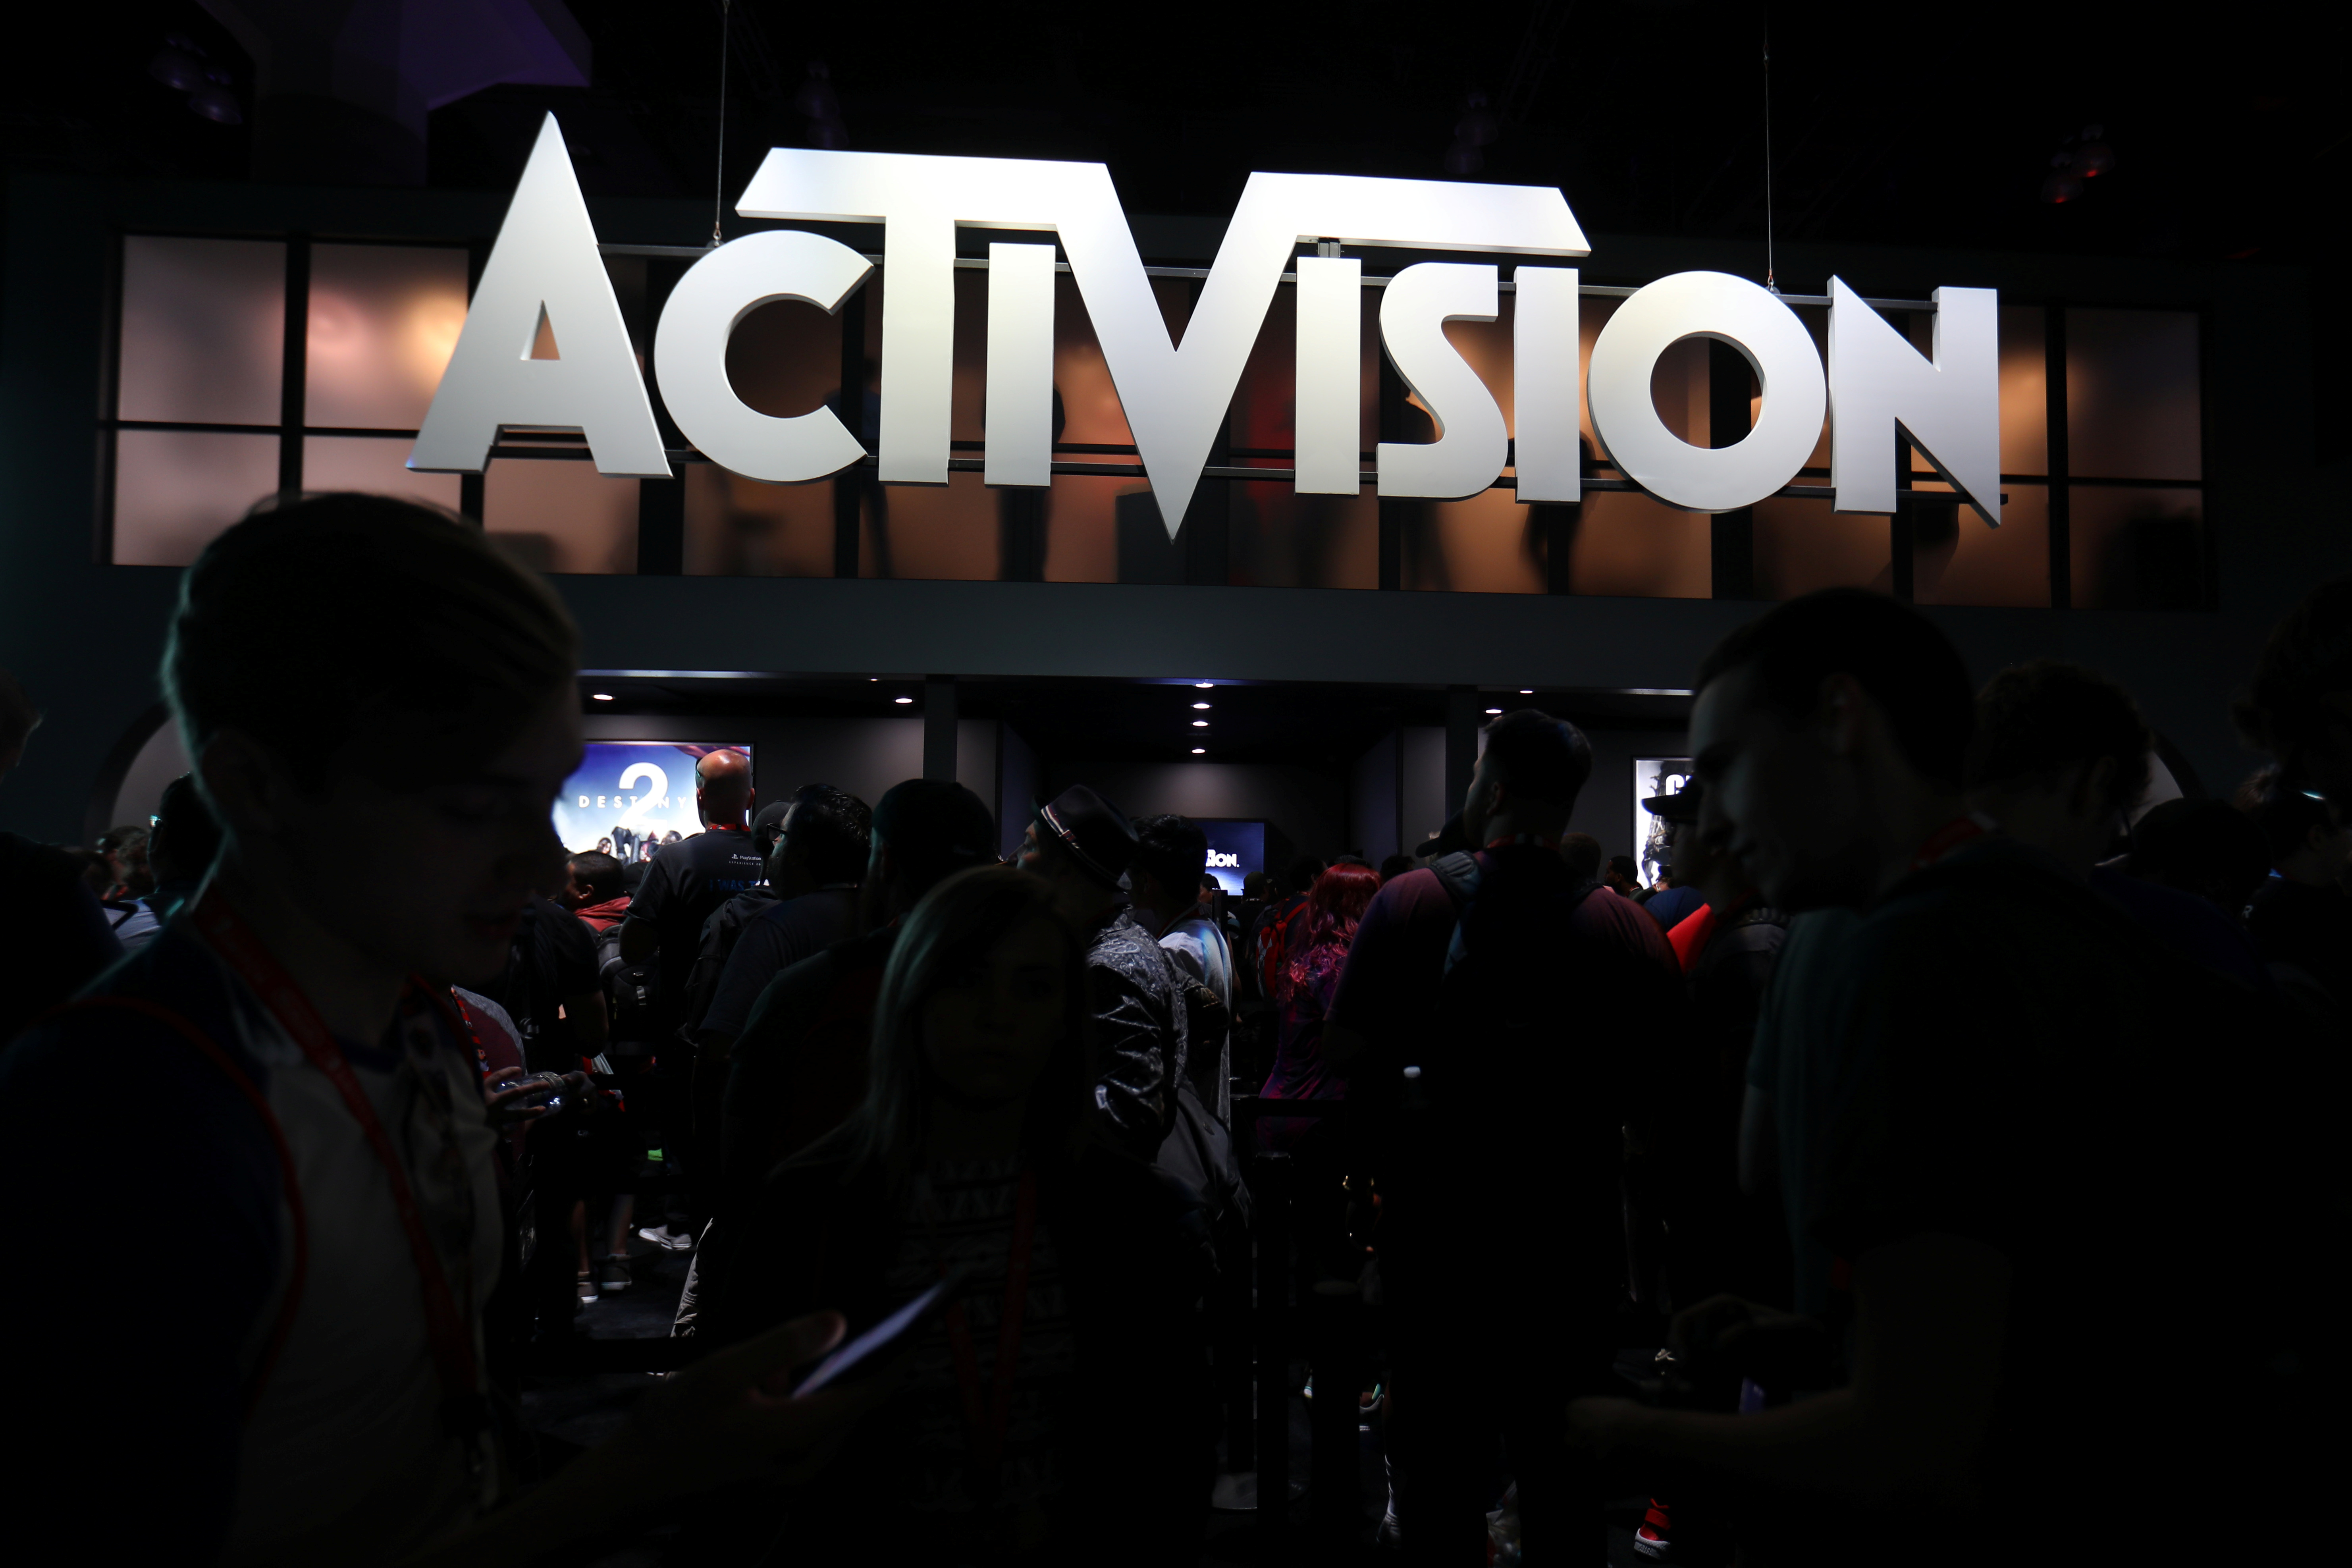 The Activision booth at the E3 2017 Electronic Entertainment Expo in Los Angeles, California. REUTERS/ Mike Blake